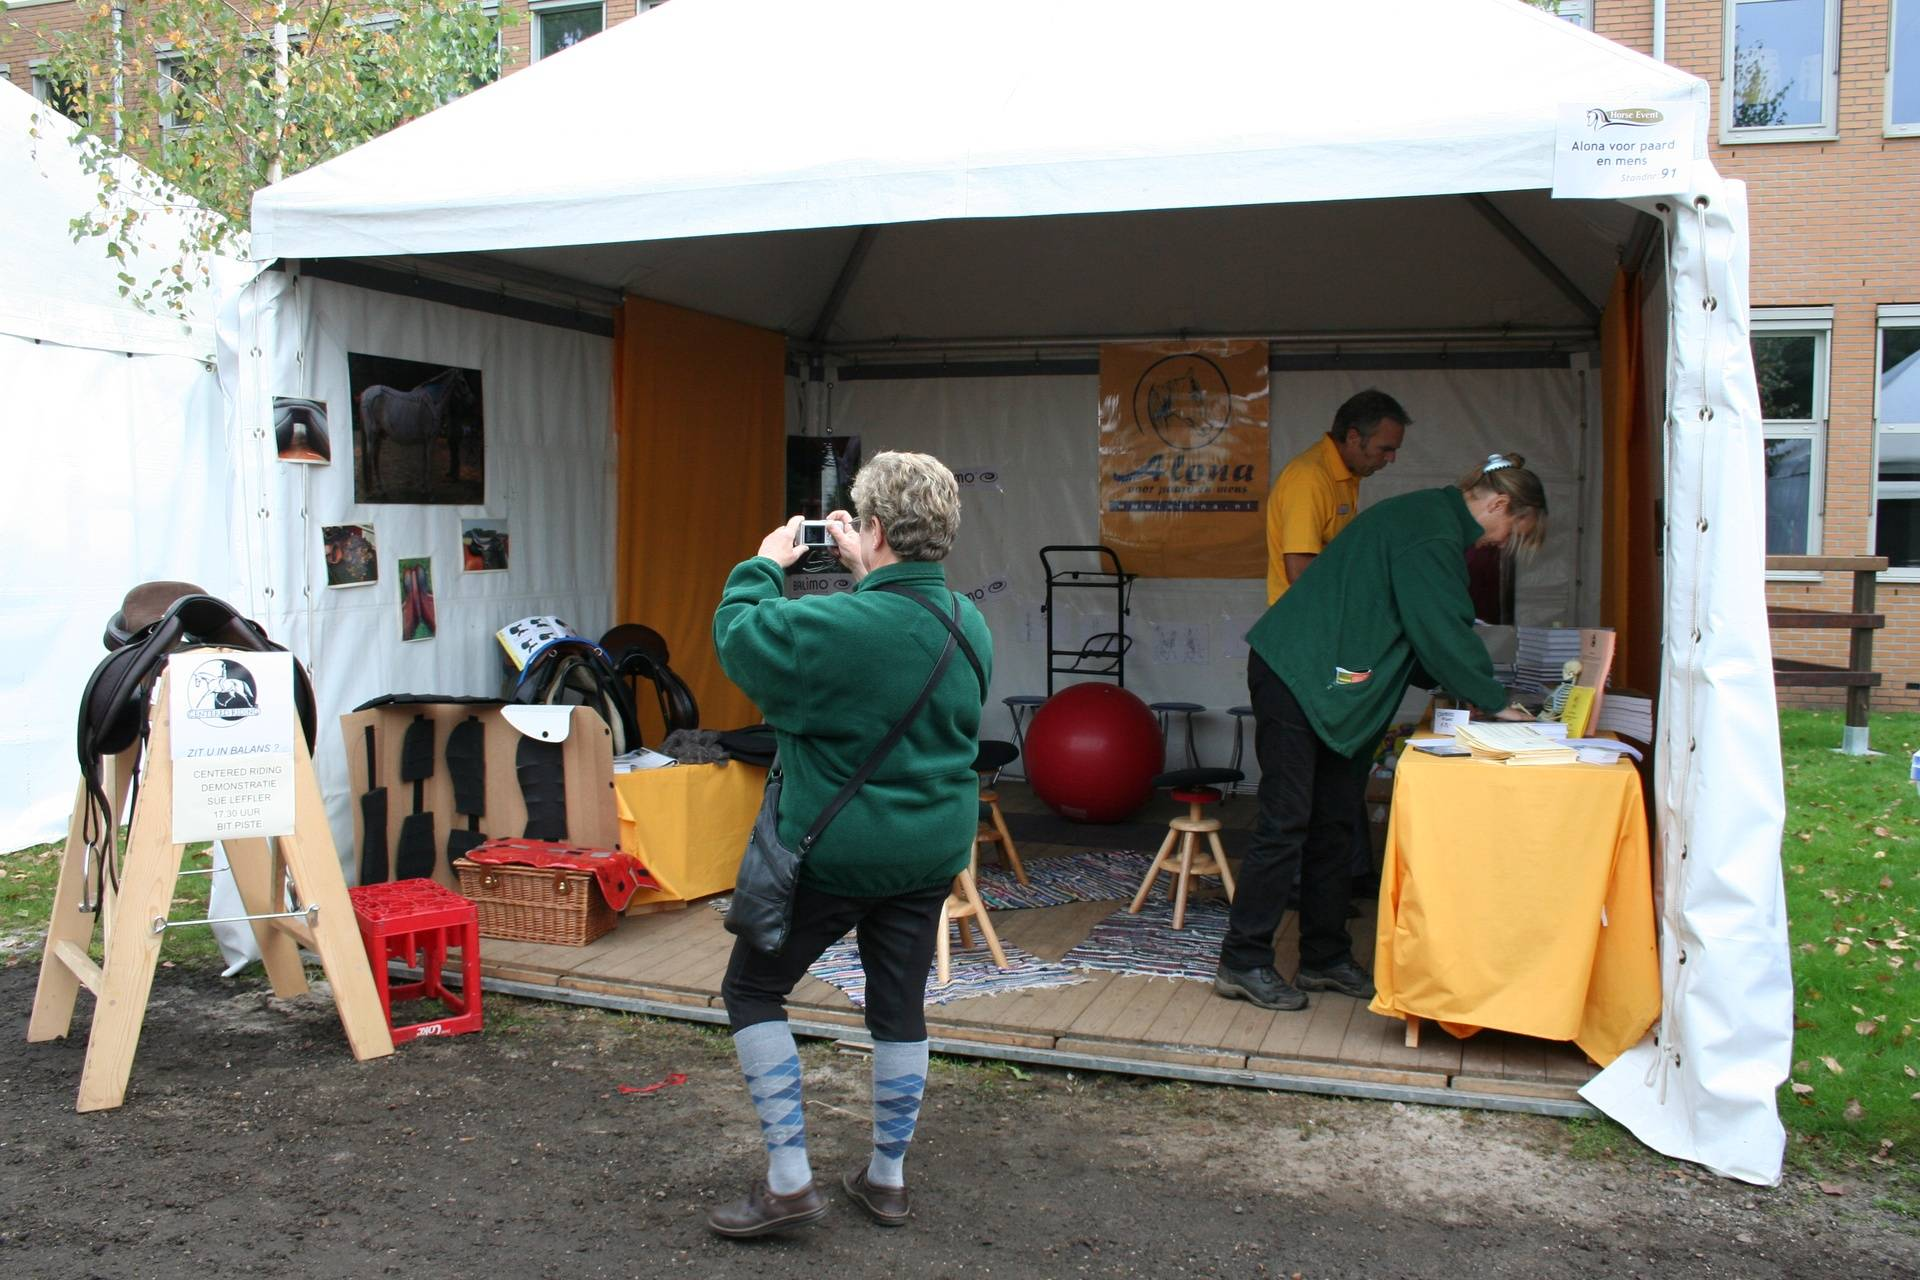 Alona and Centered Riding's Booth